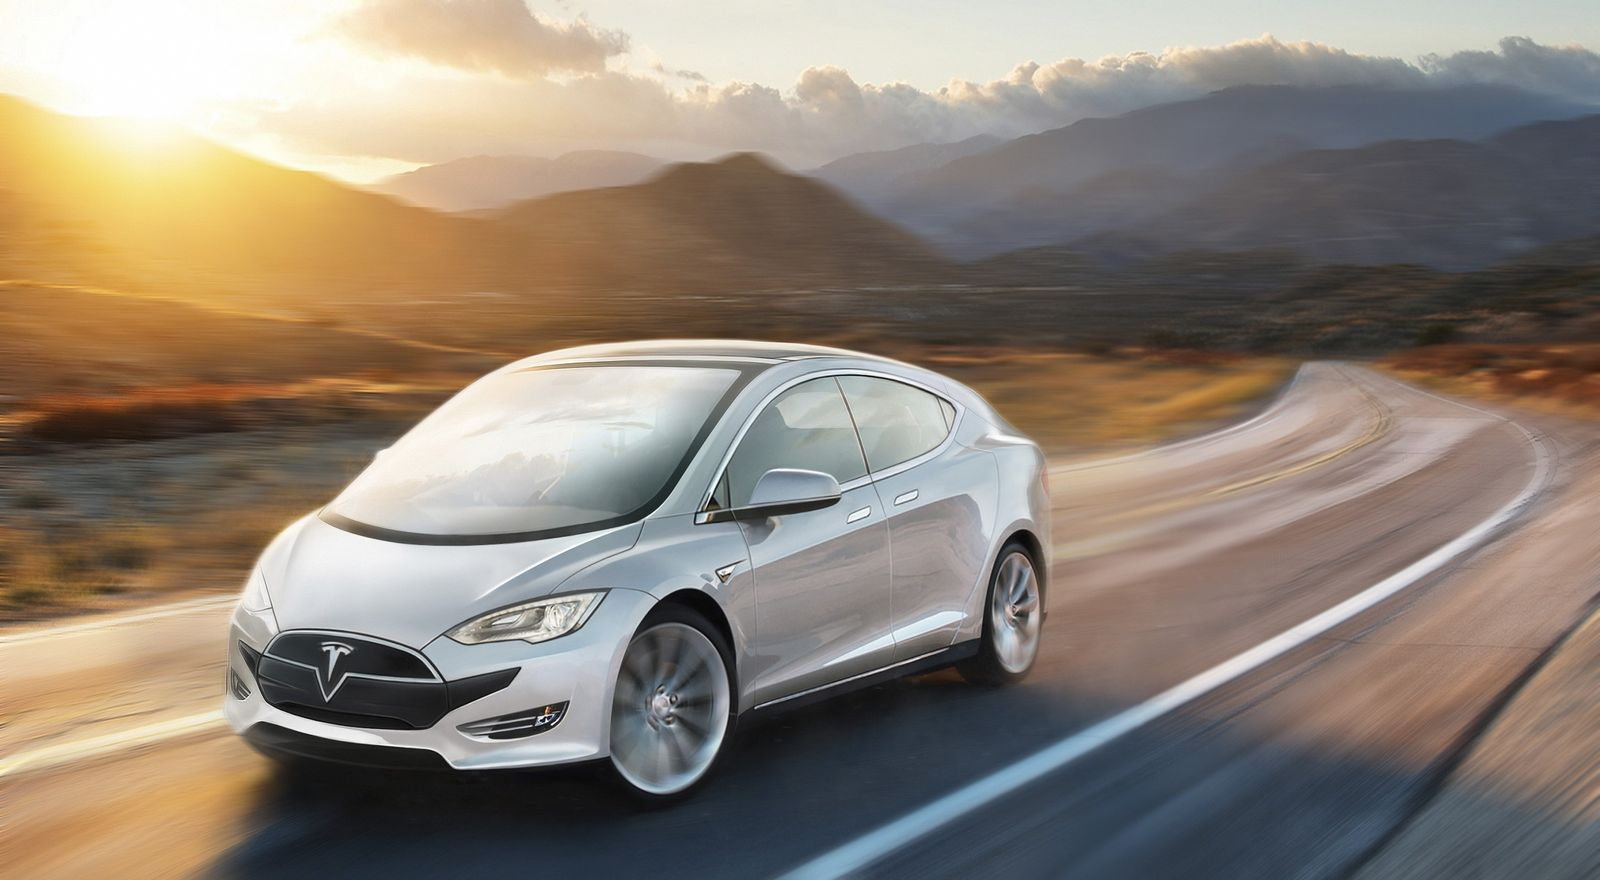 Top 10 most affordable luxury cars autospies auto news - If Tesla Became A Full Line Automaker In 2016 Which Of These Models Would Be A Success